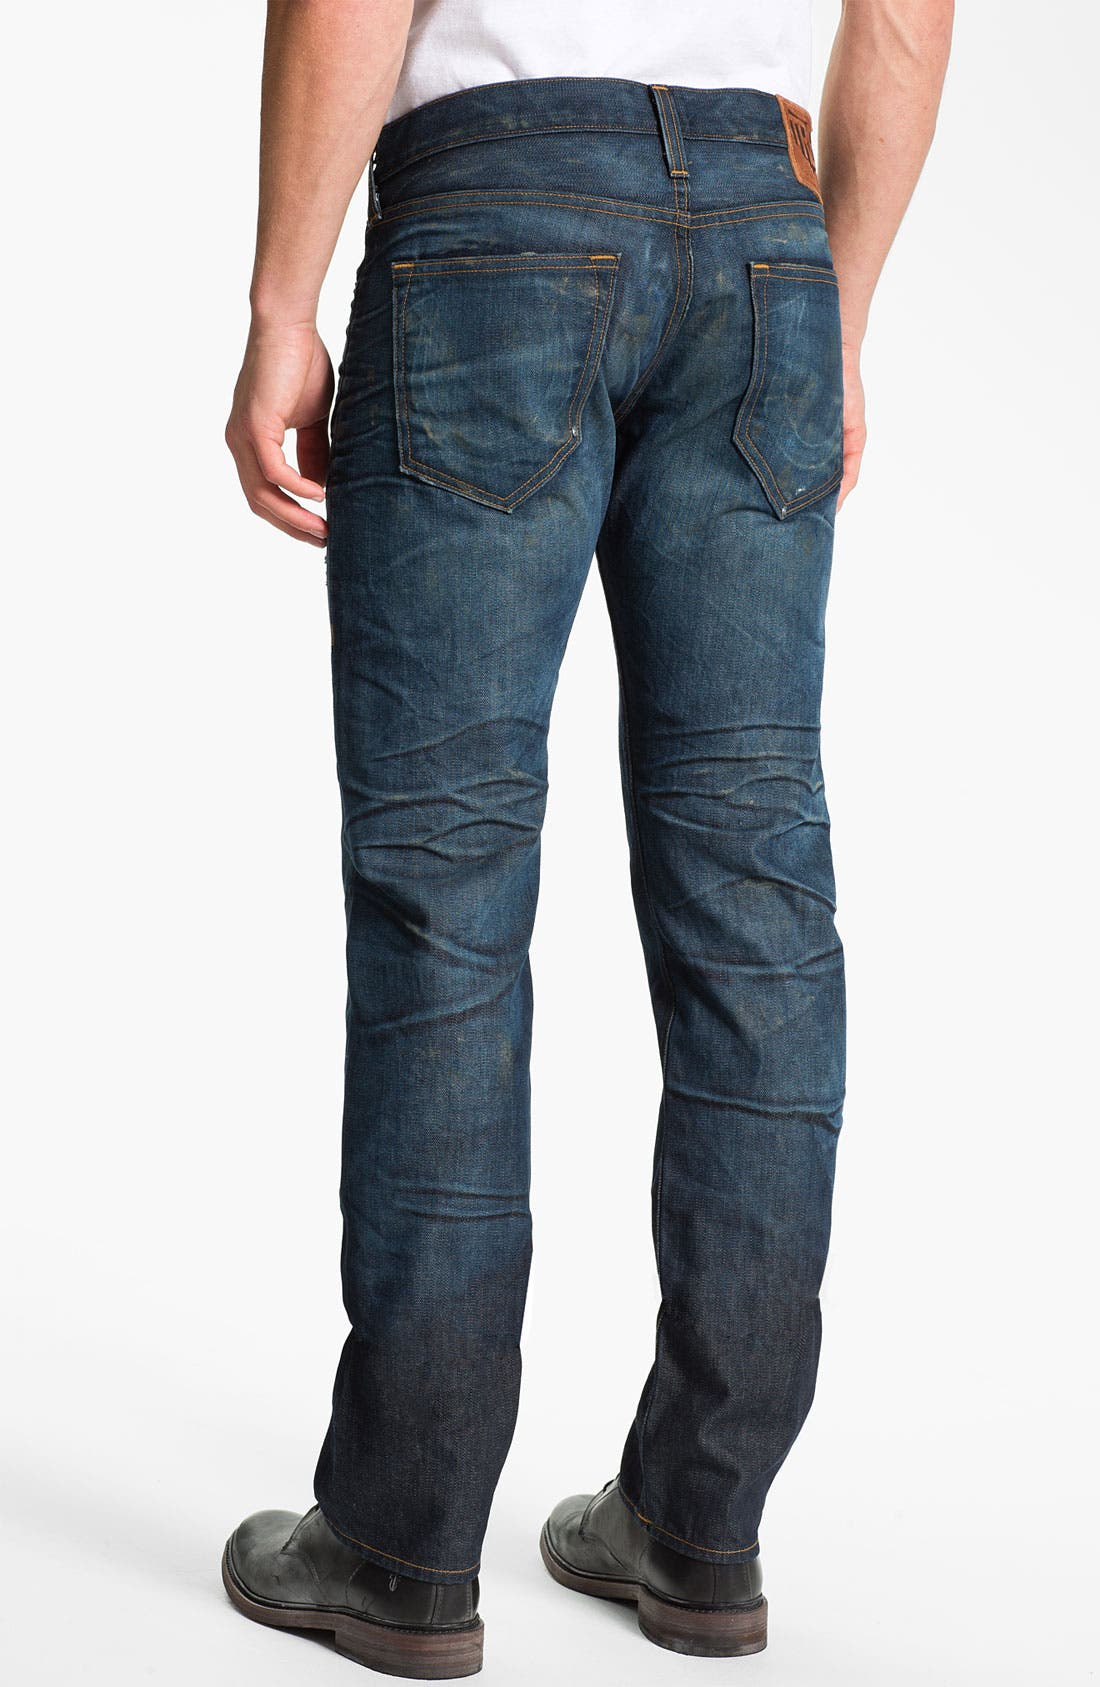 Alternate Image 1 Selected - True Religion Brand Jeans 'Geno 1971' Slim Straight Leg Jeans (Hideout)